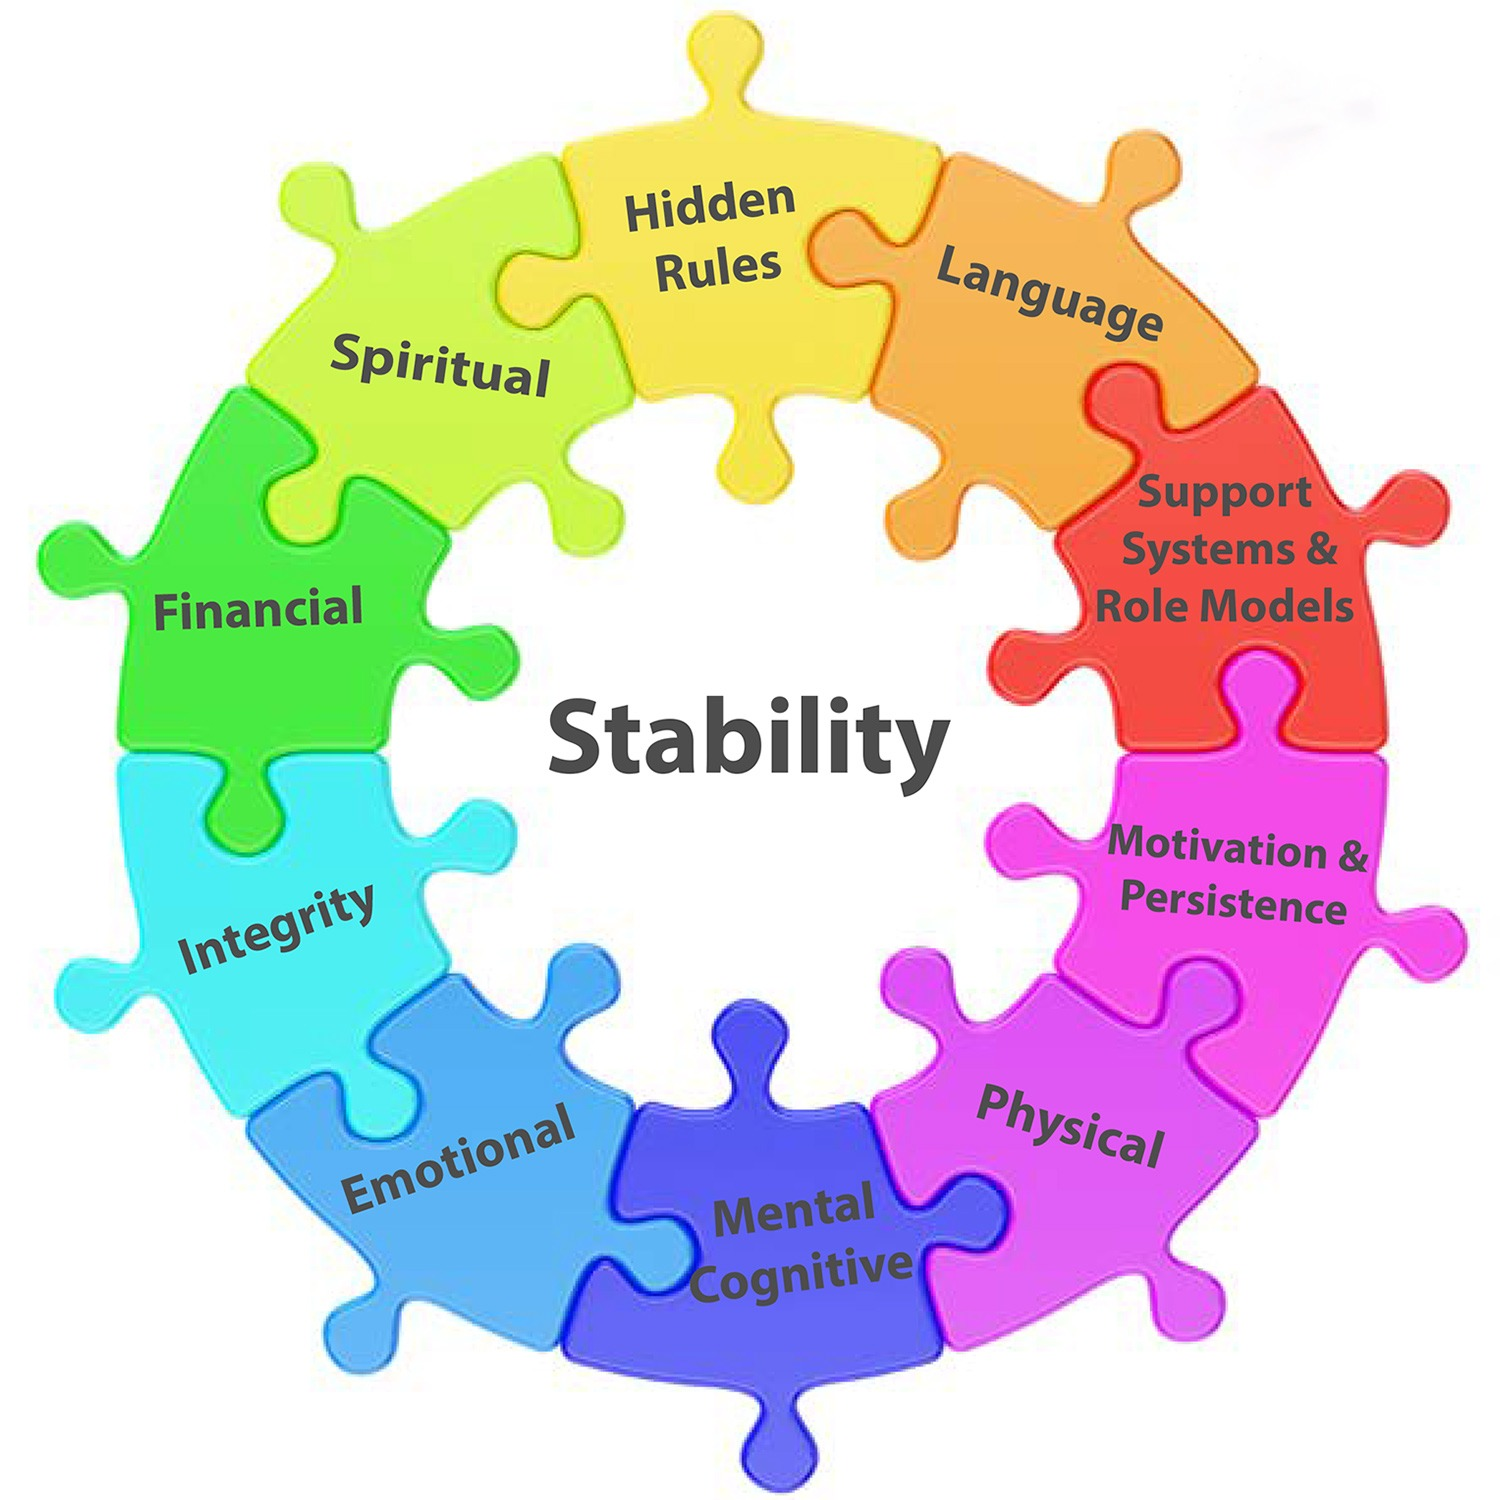 Stability Wheel | The Well Resource Center